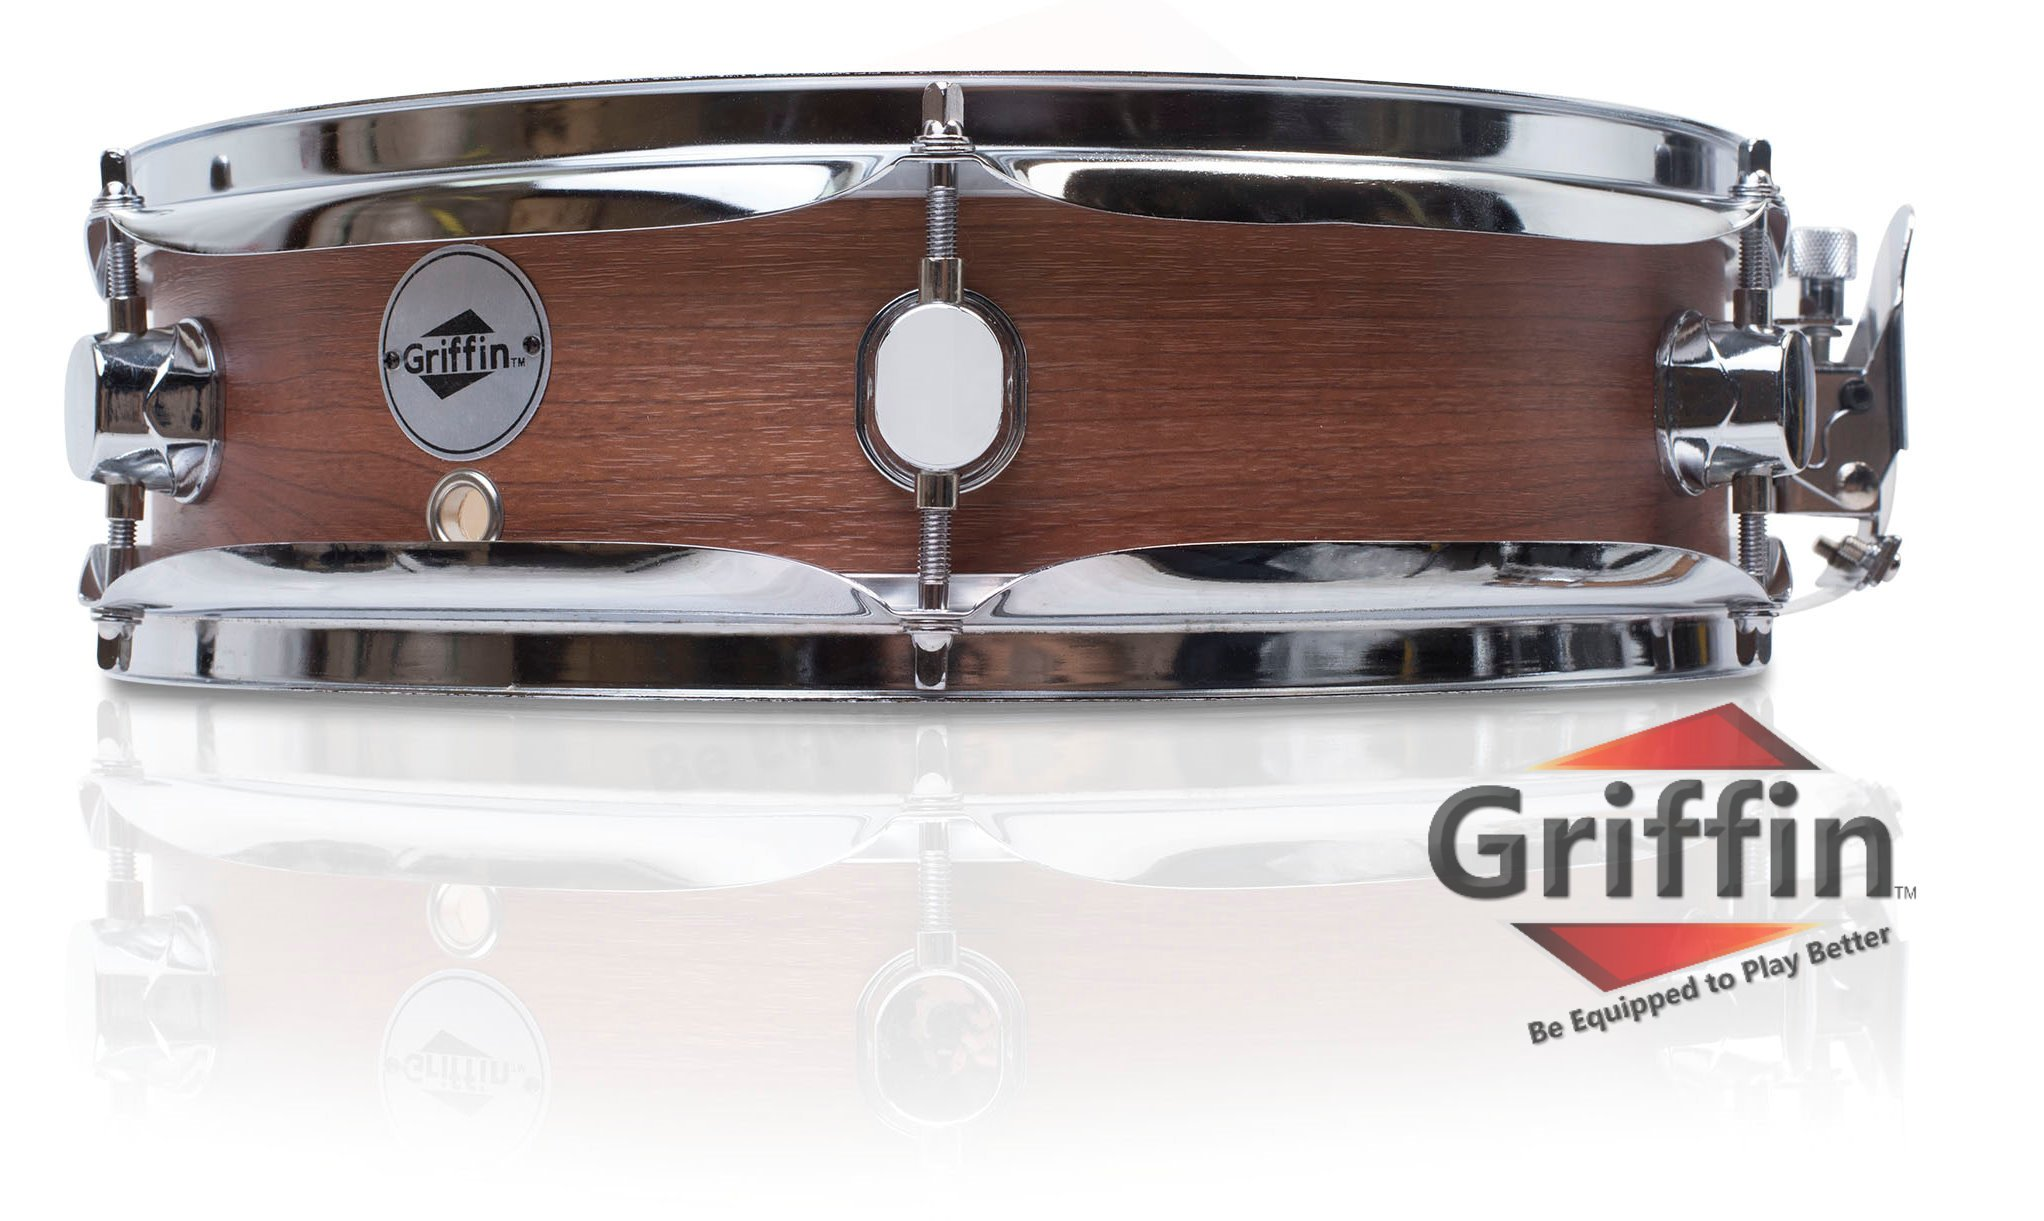 Piccolo Snare Drum 13'' x 3.5'' by Griffin|100% Poplar Wood Shell with Flat Hickory Finish and Coated Drum Head | Professional Drummers Deluxe Percussion Instrument with Bright Tone and Brilliant Attack by Griffin